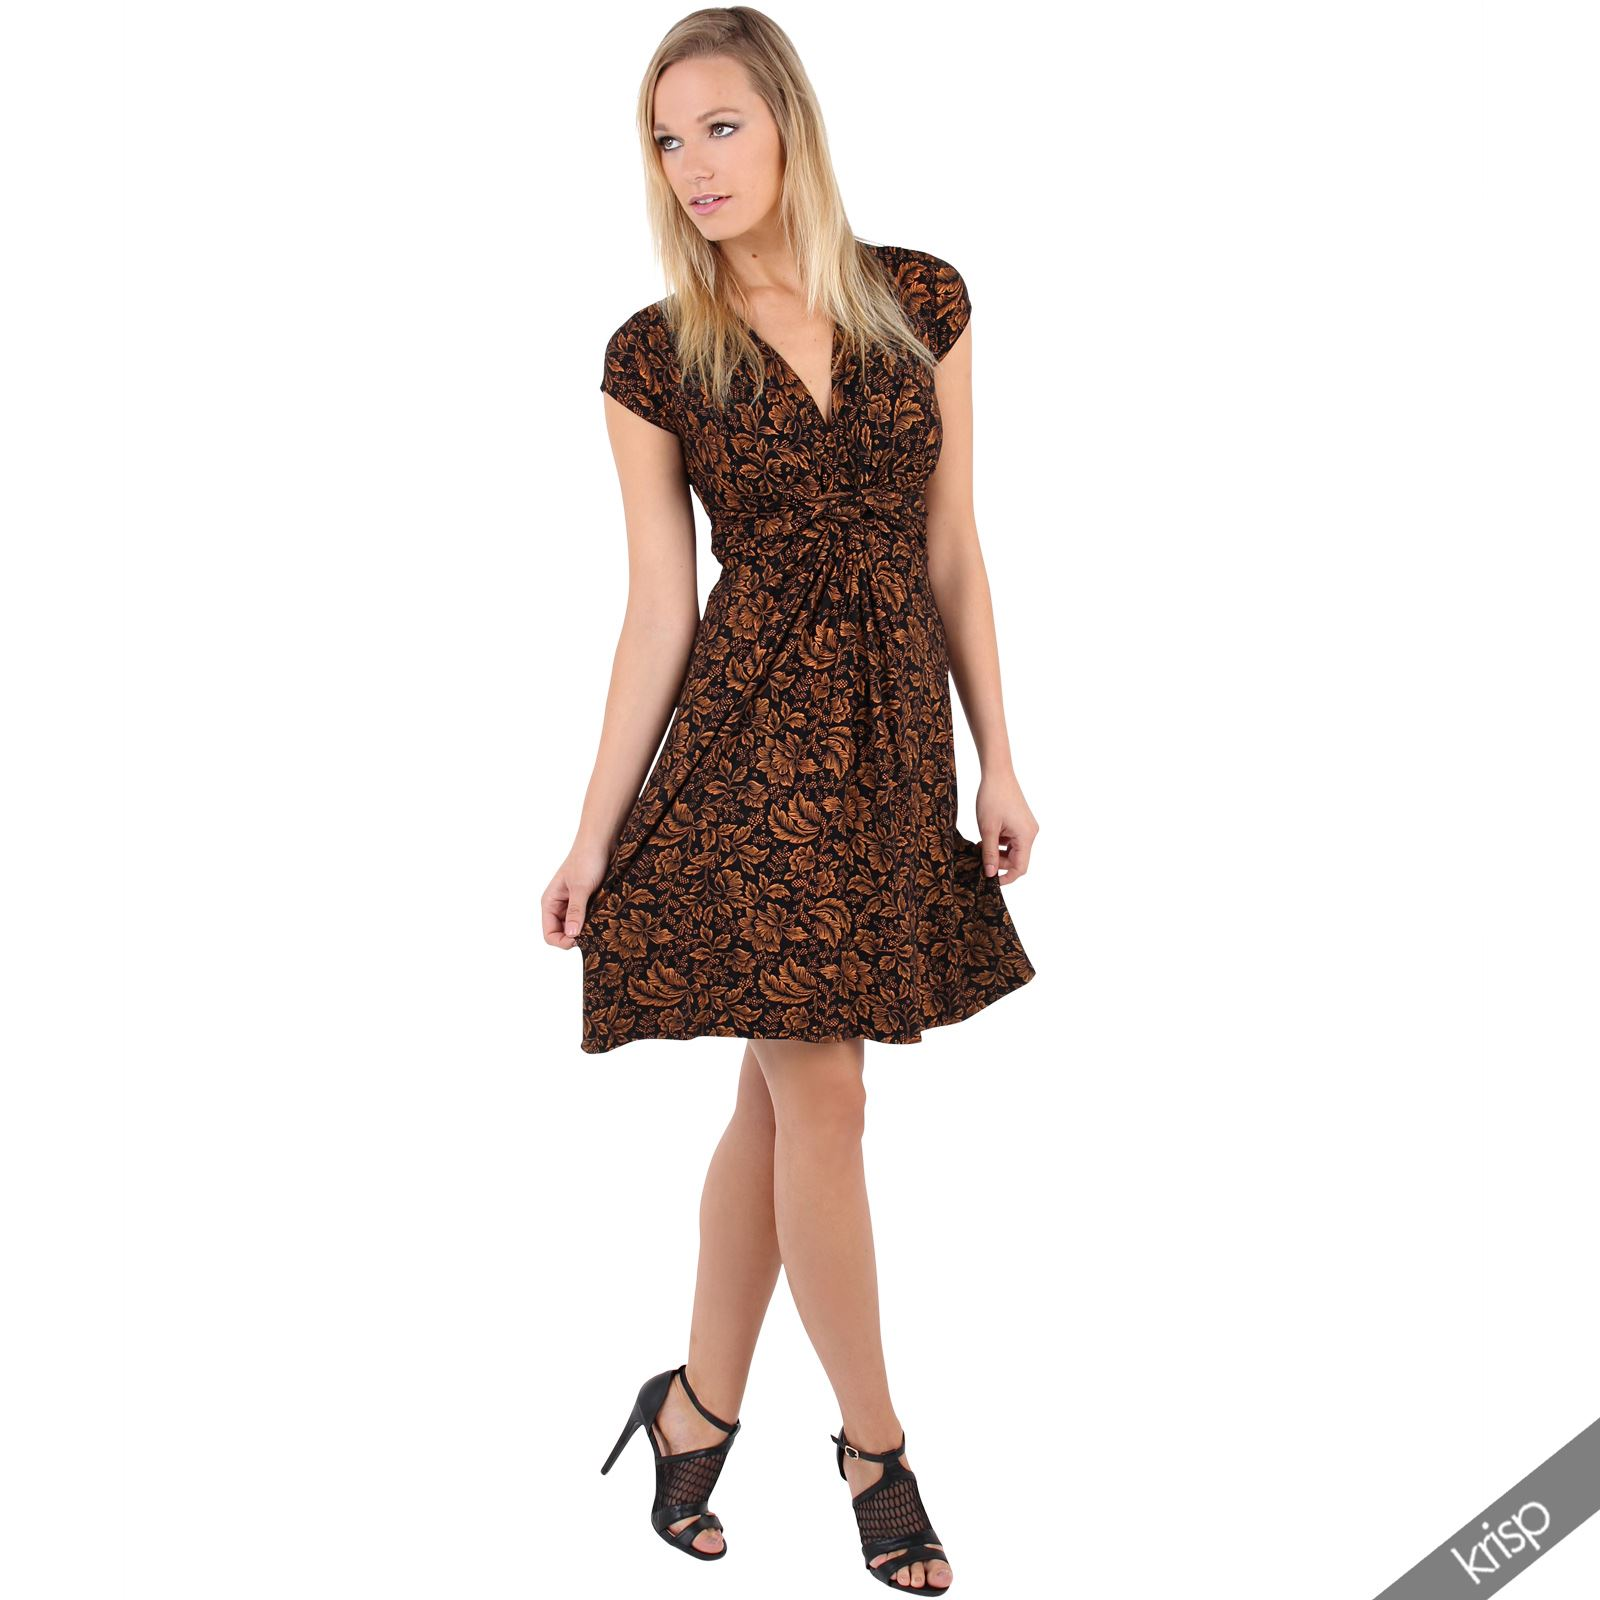 Womens-Ladies-V-Neck-Mini-Midi-Dress-Floral-Print-Knot-Short-Skirt-Party-Casual thumbnail 12